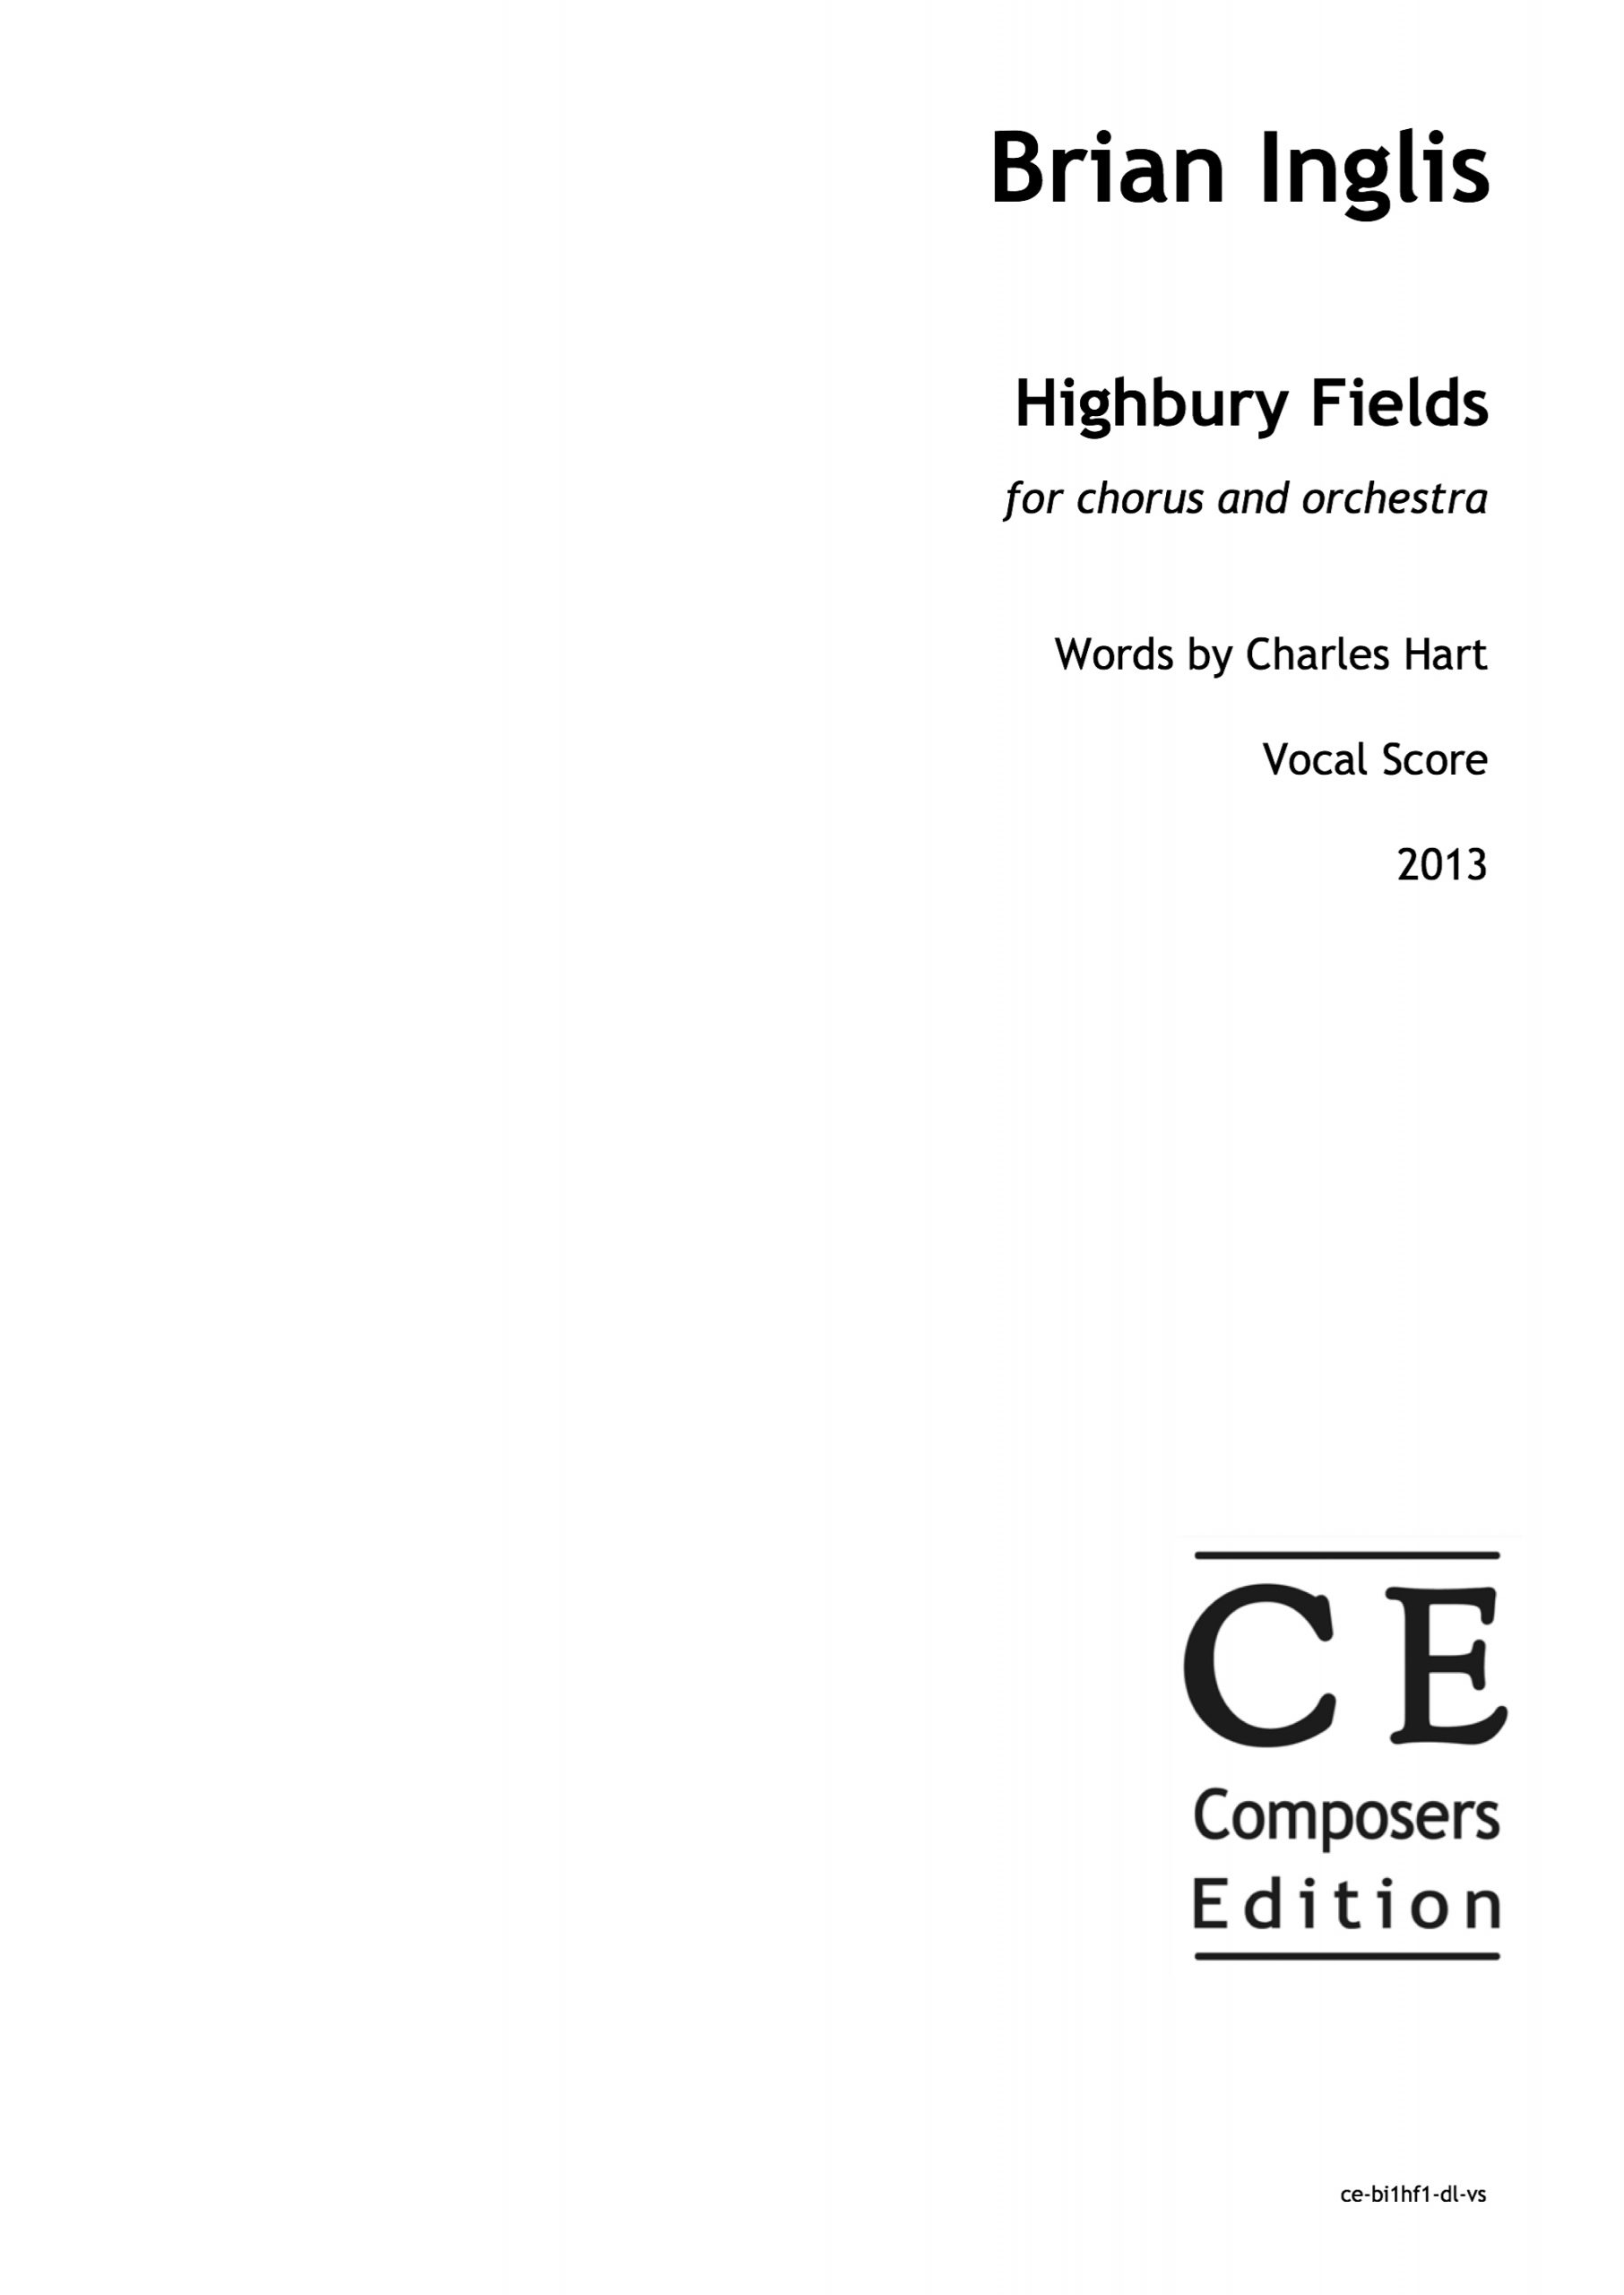 Brian Inglis: Highbury Fields for chorus and orchestra